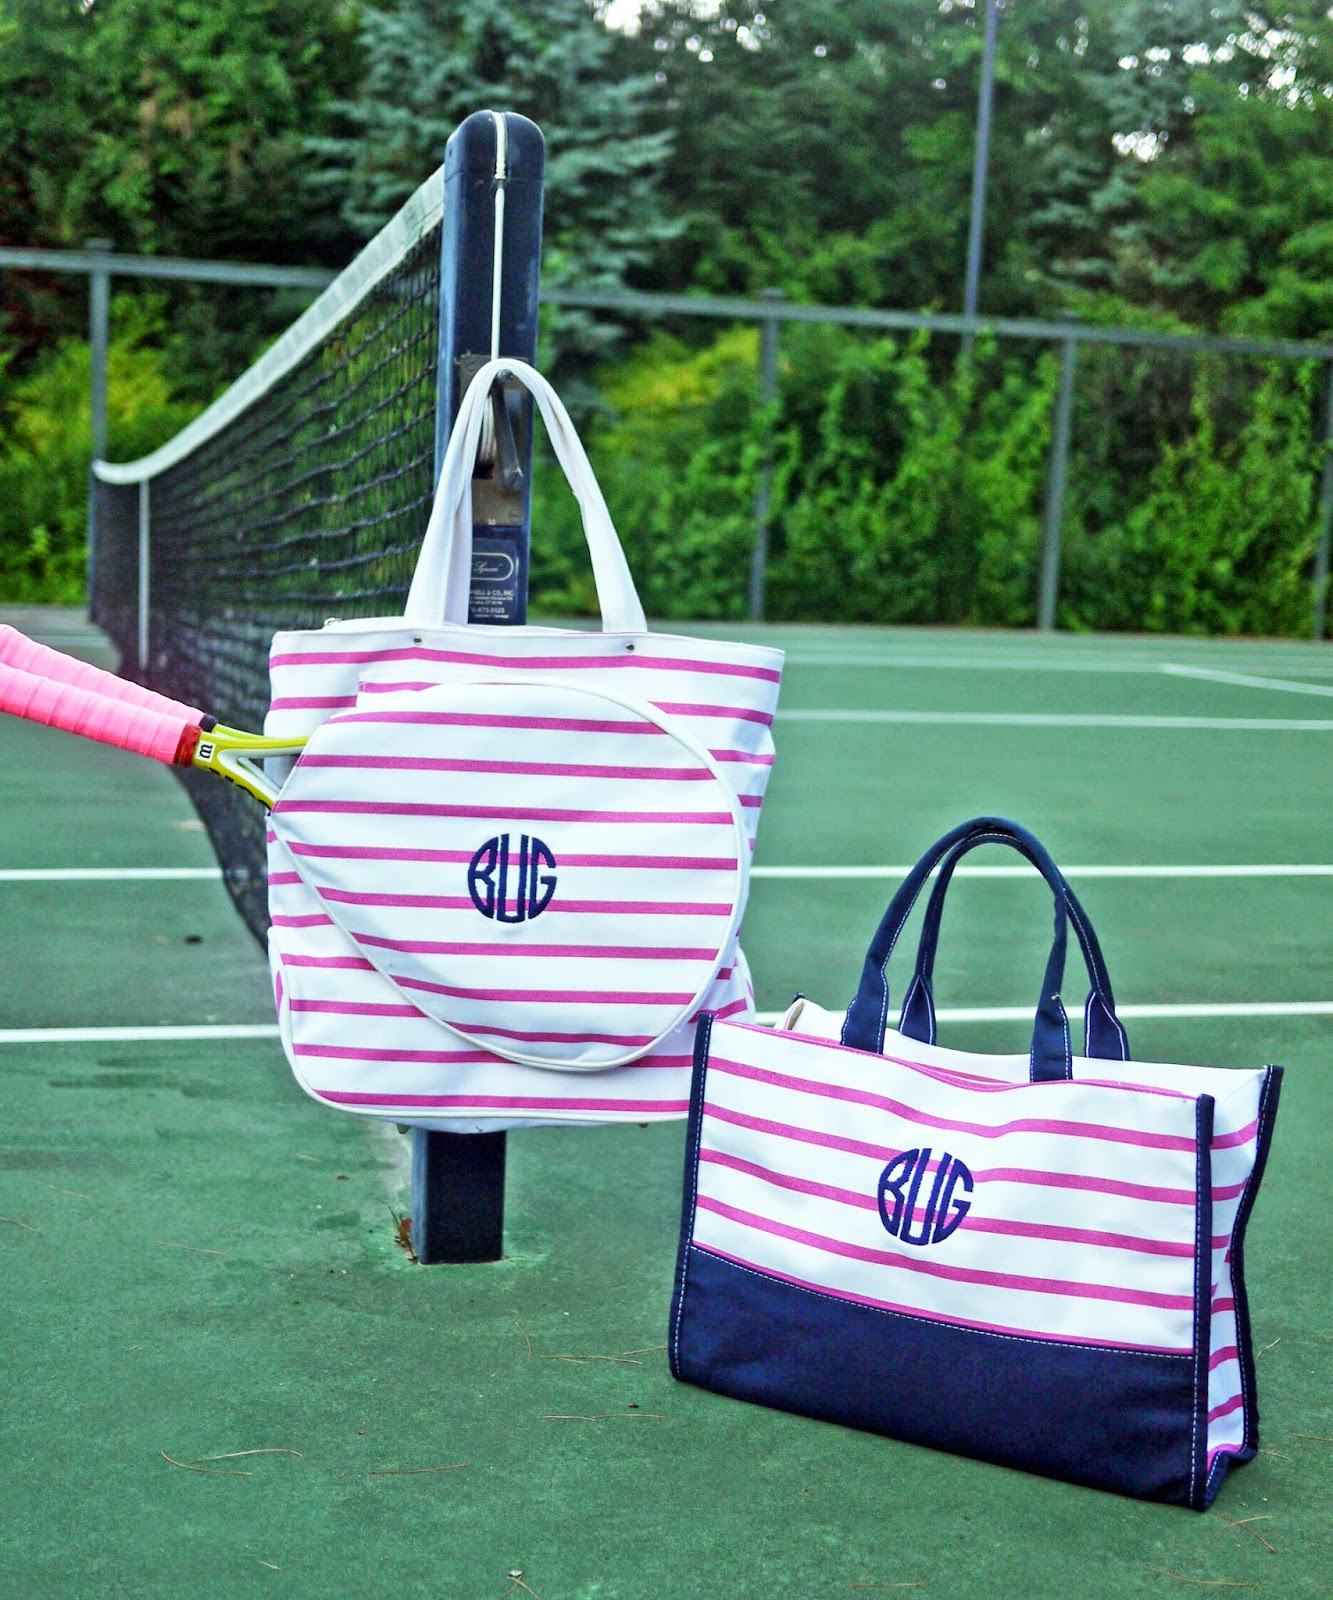 Back In Stock Monogram Tennis Bags The Buggy Blog